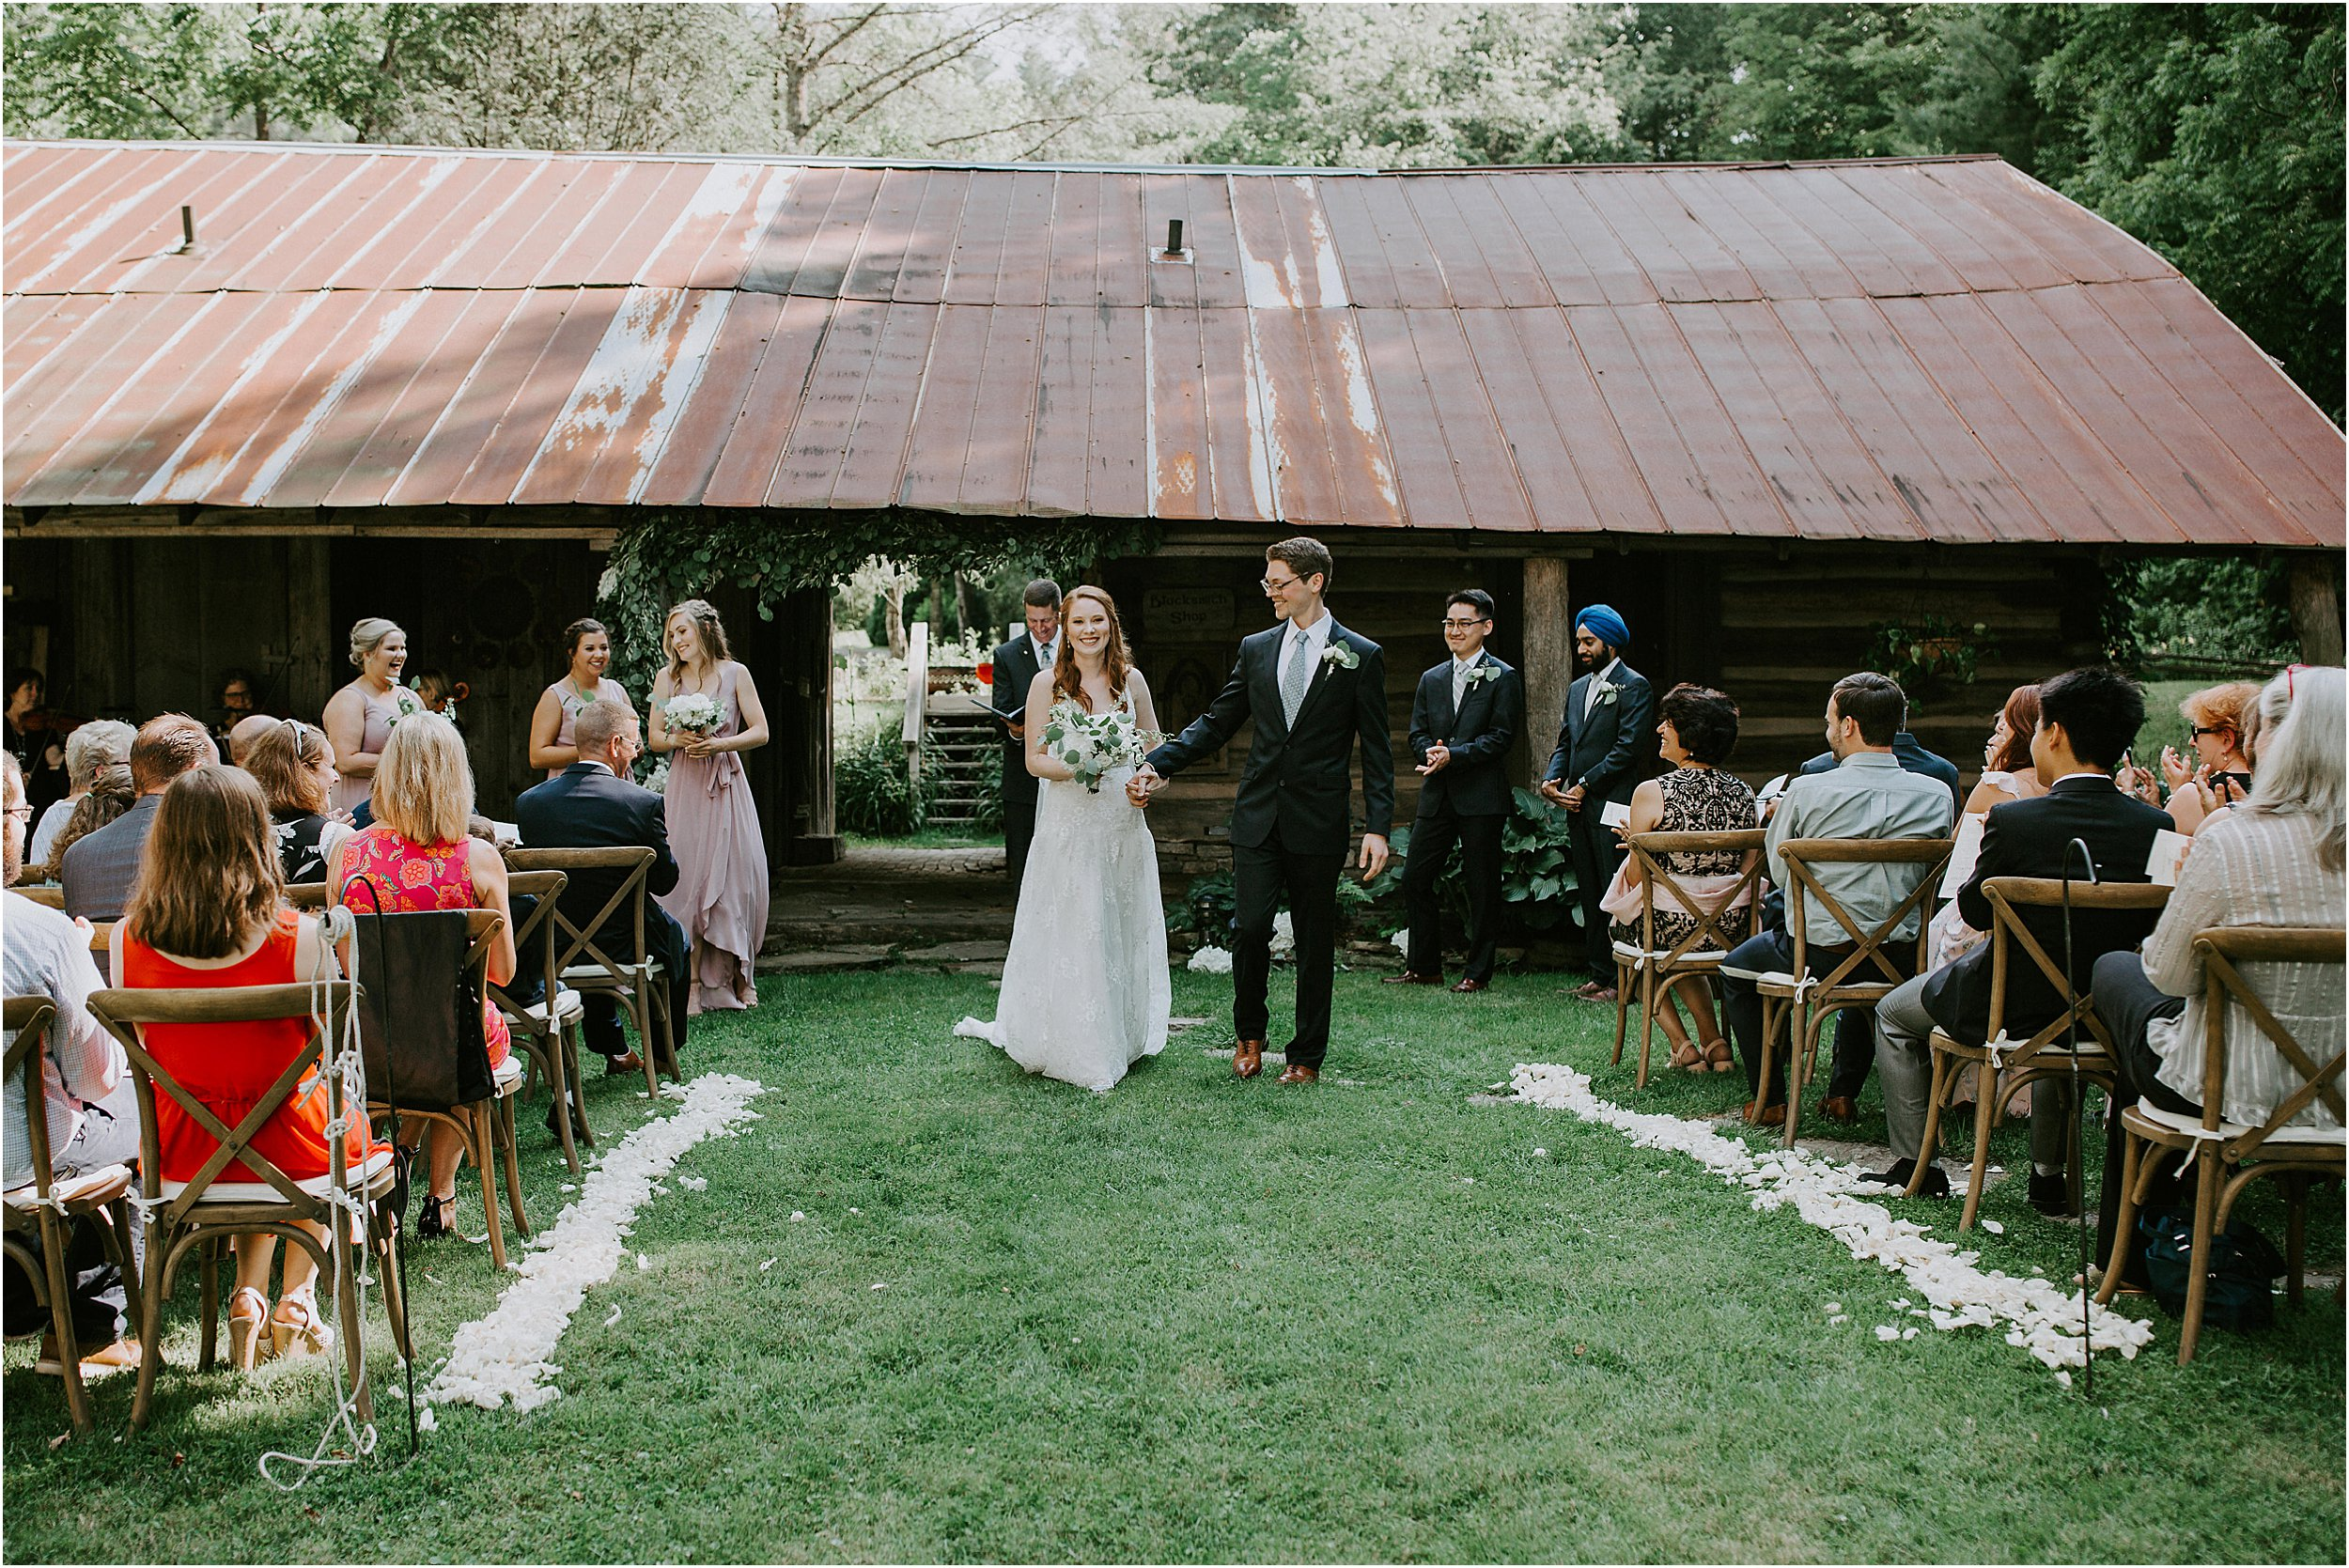 A bride and groom just finish their outdoor ceremony that took place in front of a old building with a rusted metal roof. They are walking down the aisle that is lined with flower petals and their guests.